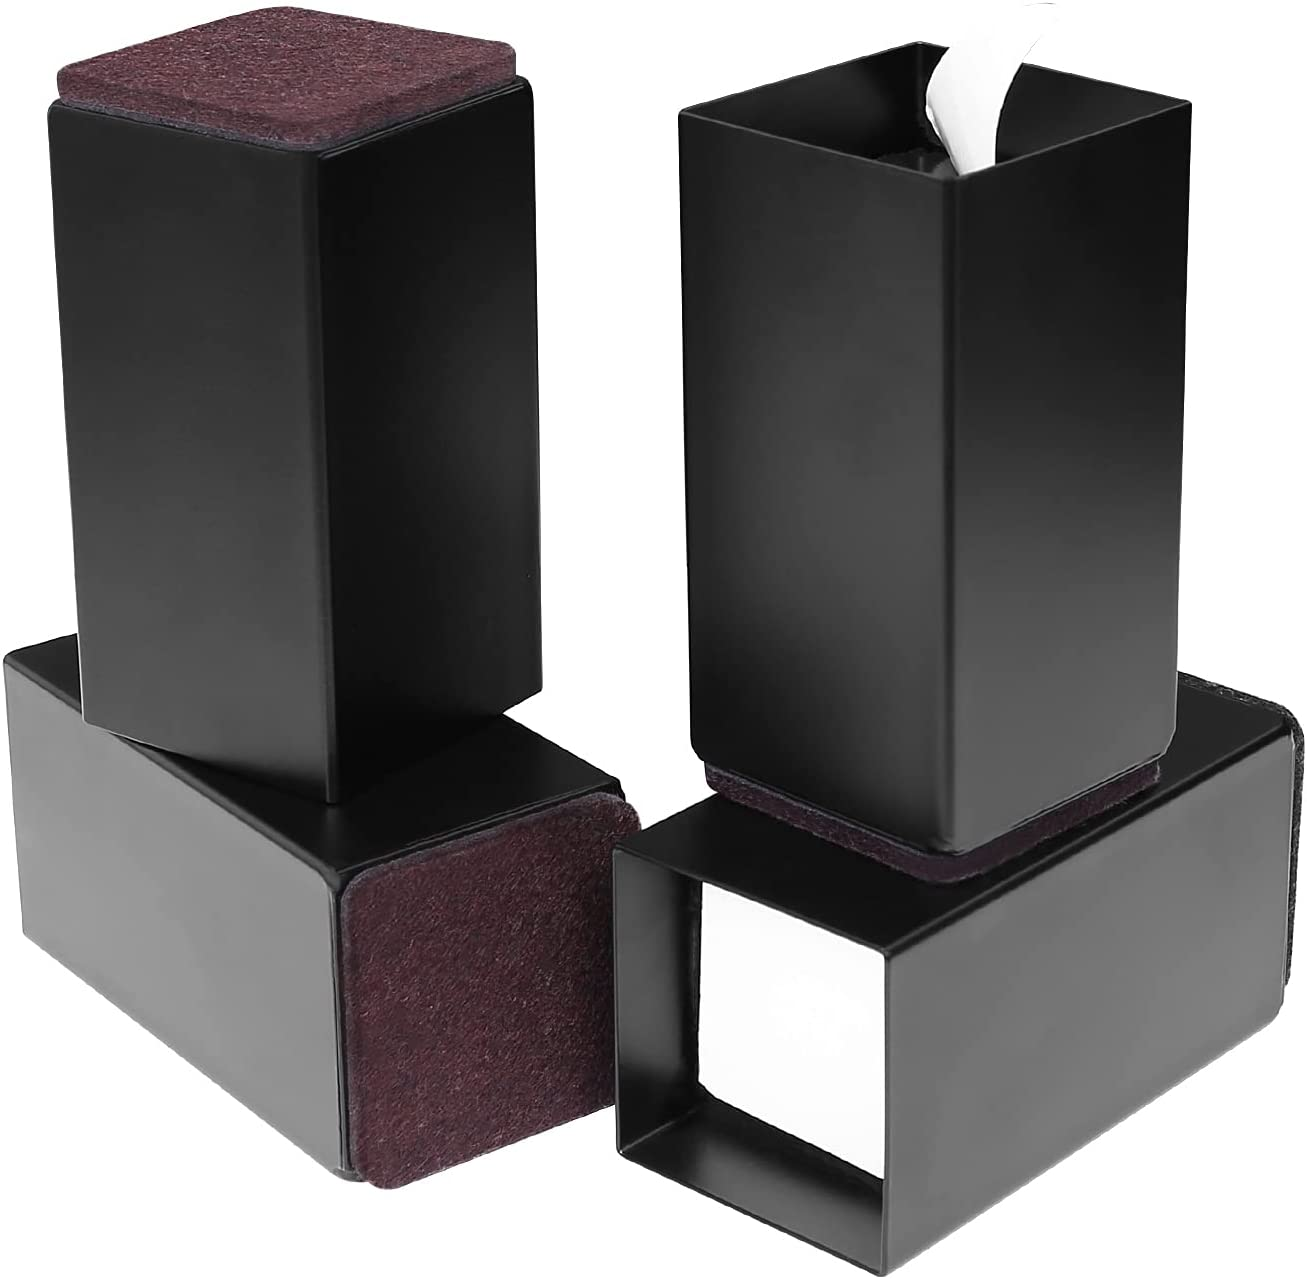 """ZDDLOINP Set of 4 Bed Furniture Risers - Lifts Height 4"""" - Heavy Duty Solid Steel Risers for Couch, Table, Desk, Chair with Non-Slip Bottom Felt Pad, Protect Floors and Surfaces, Square Black"""